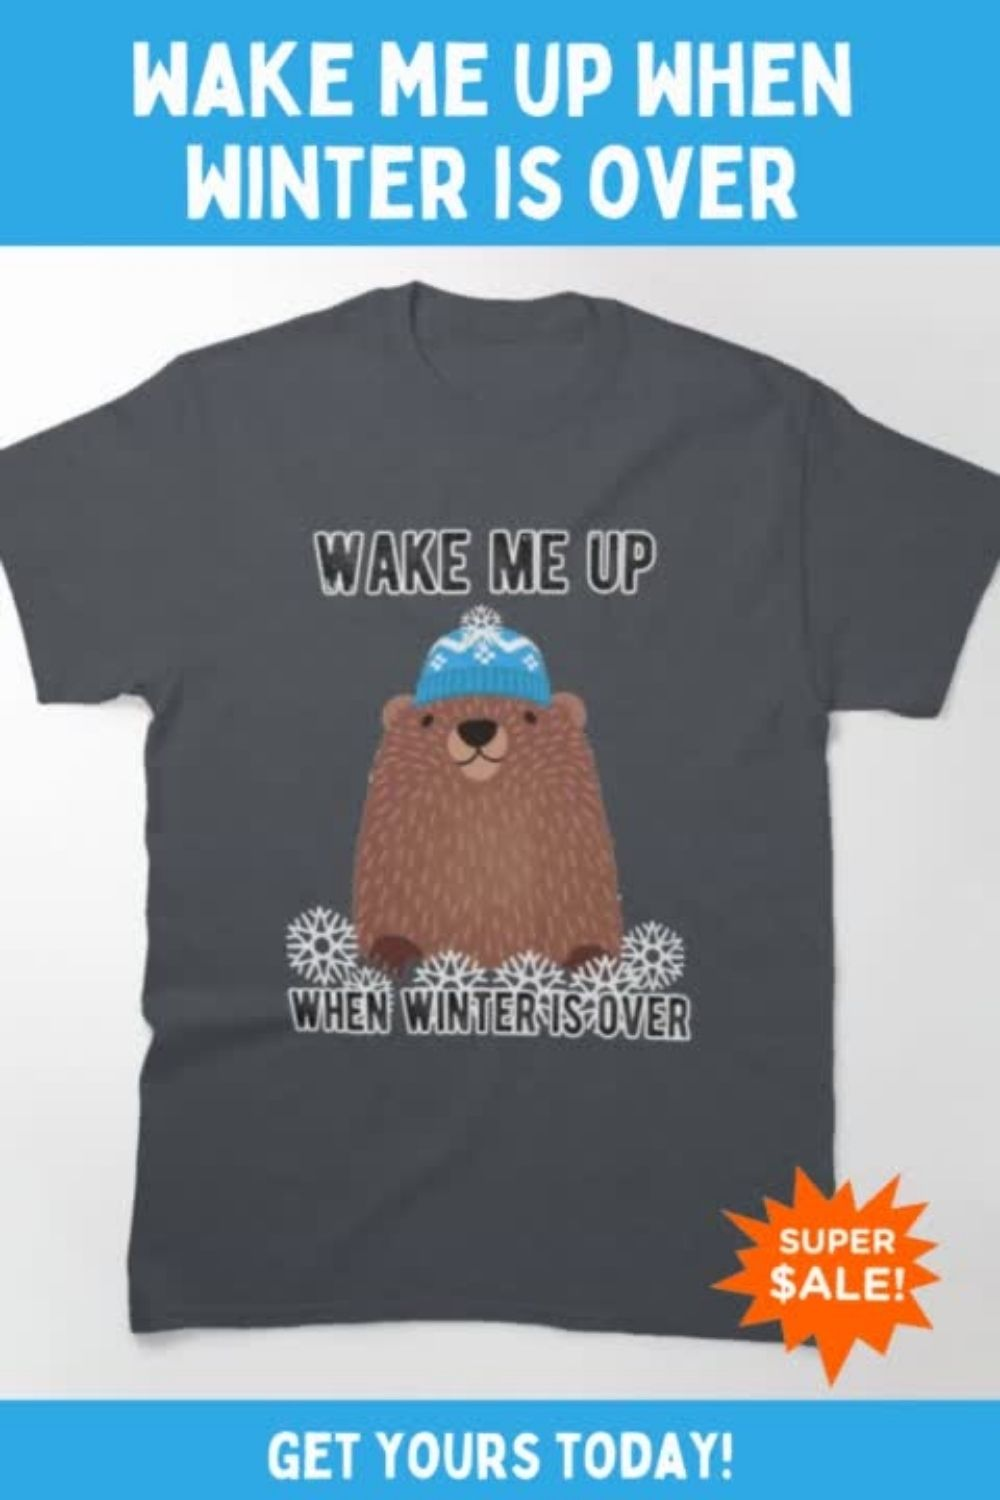 Wake Me Up When Winter is Over Groundhog TShirt SALE Blue